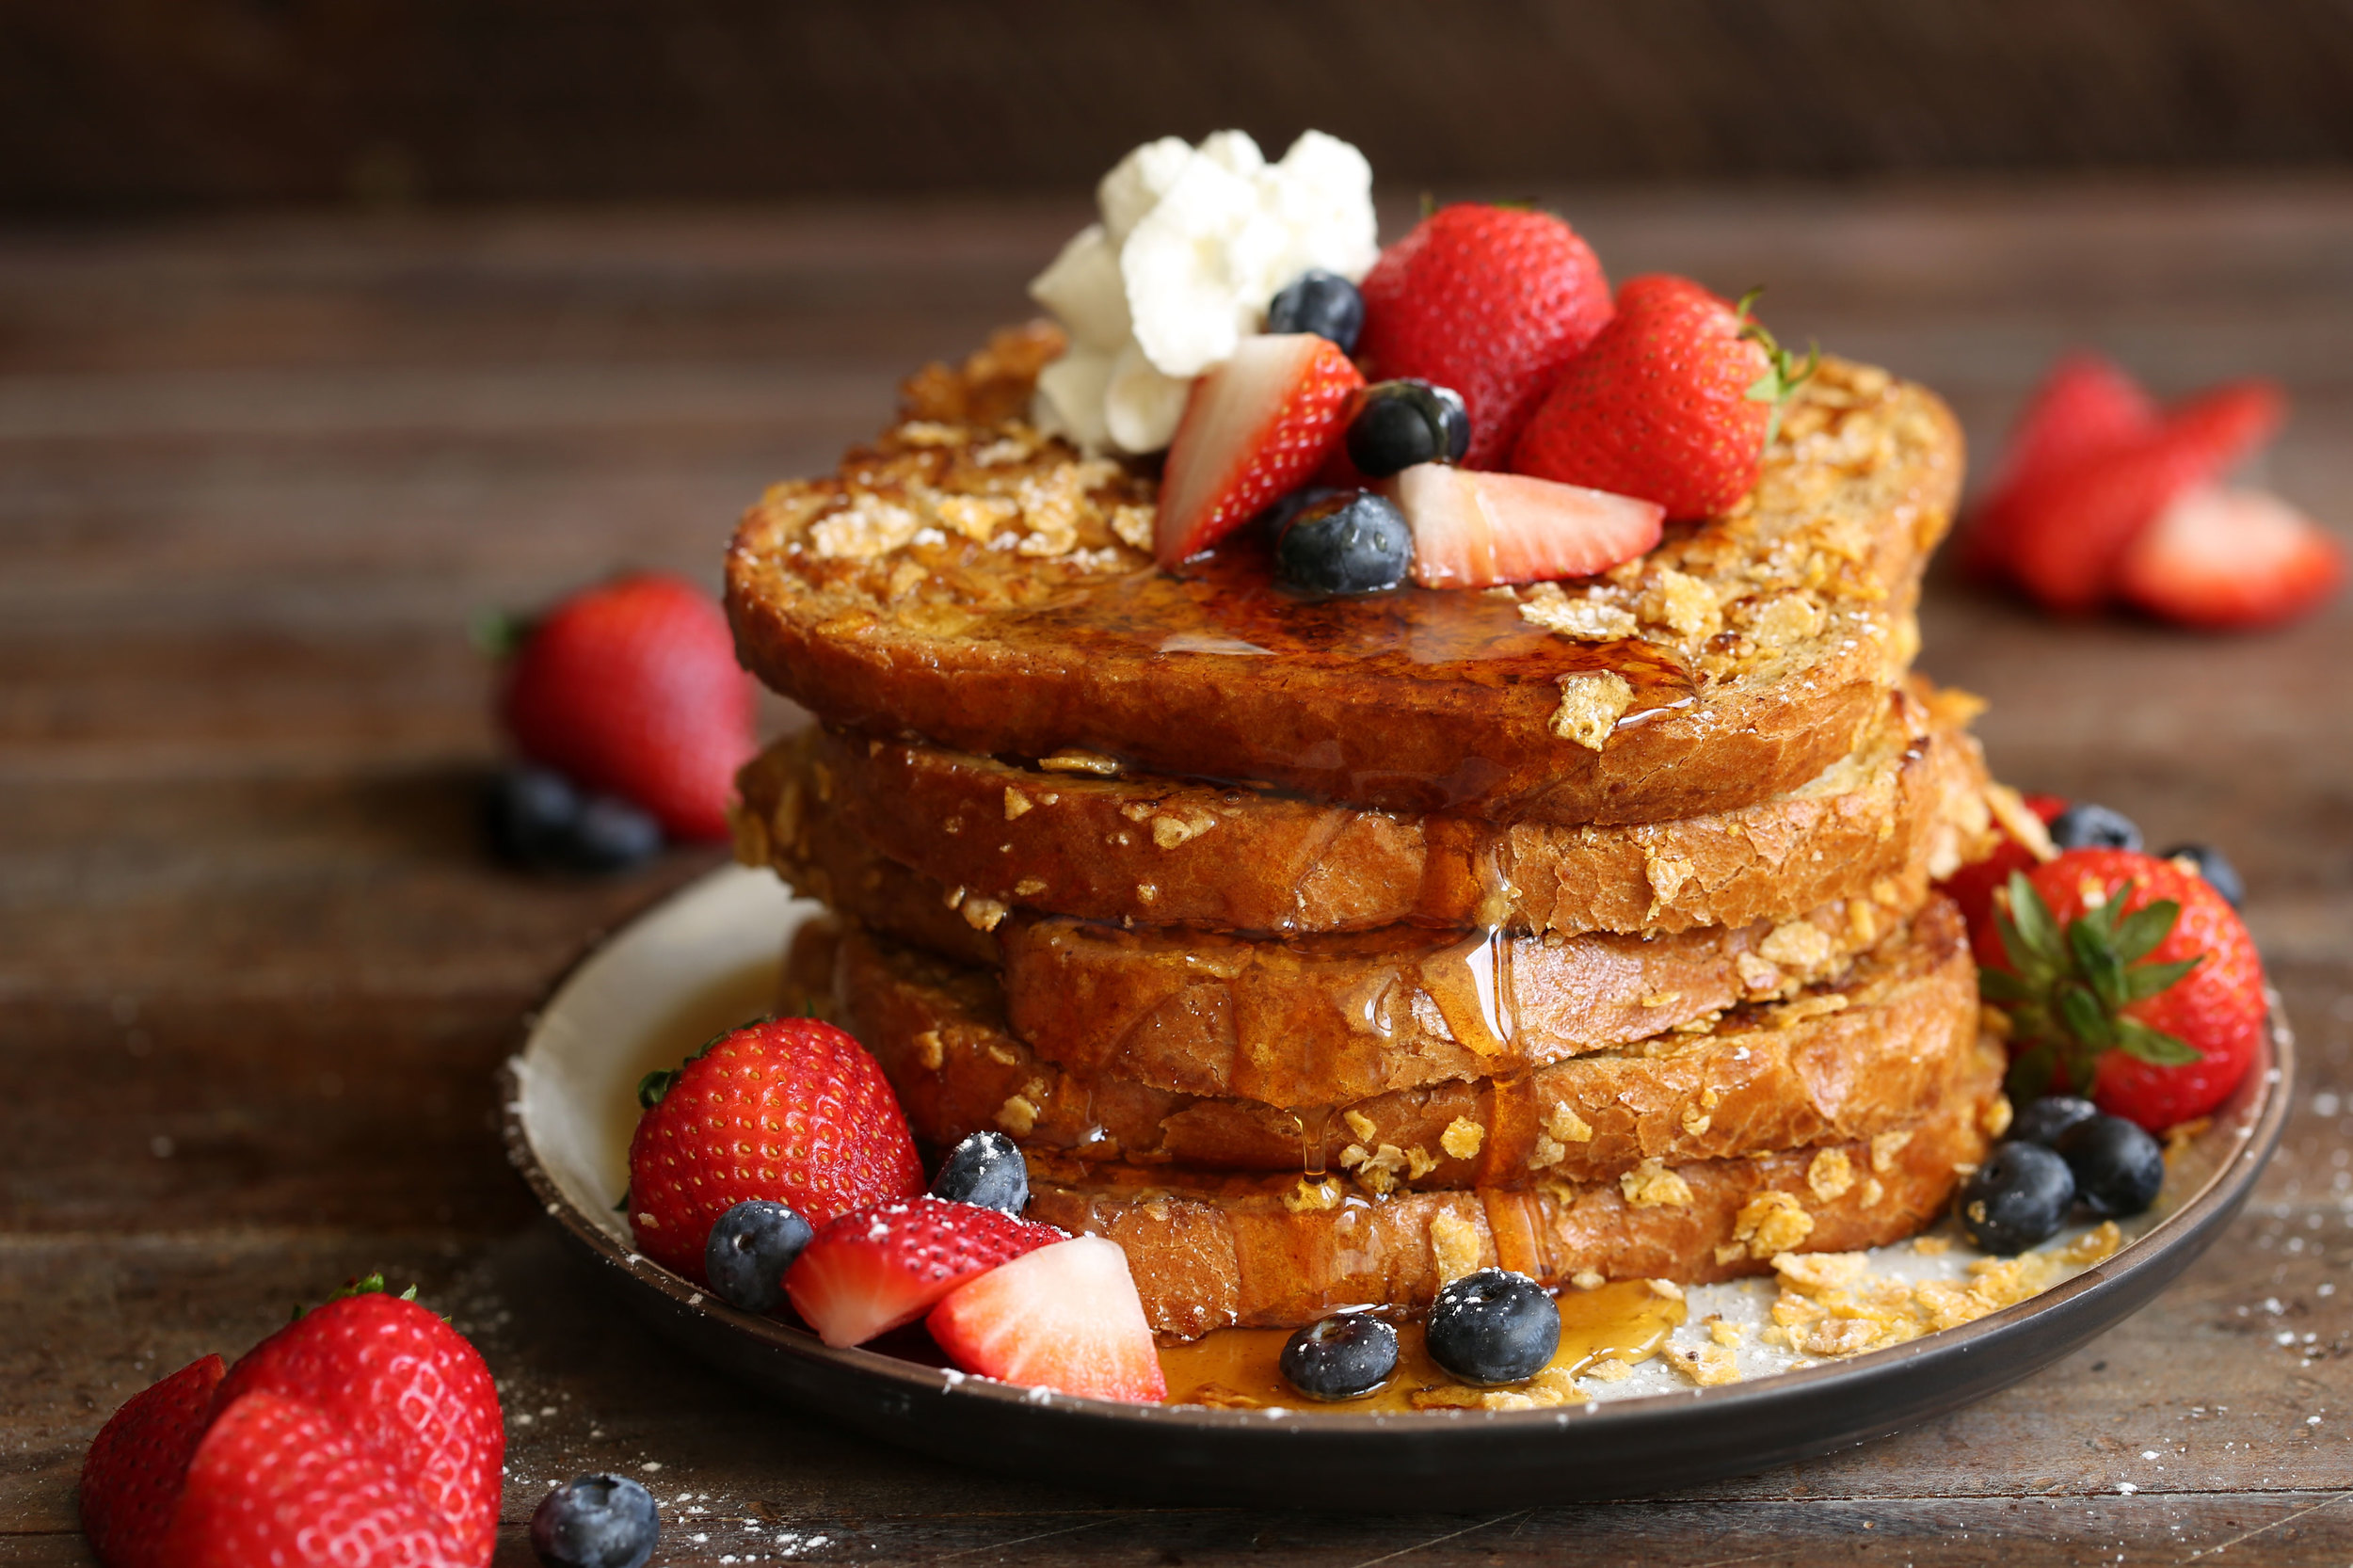 corn flake french toast